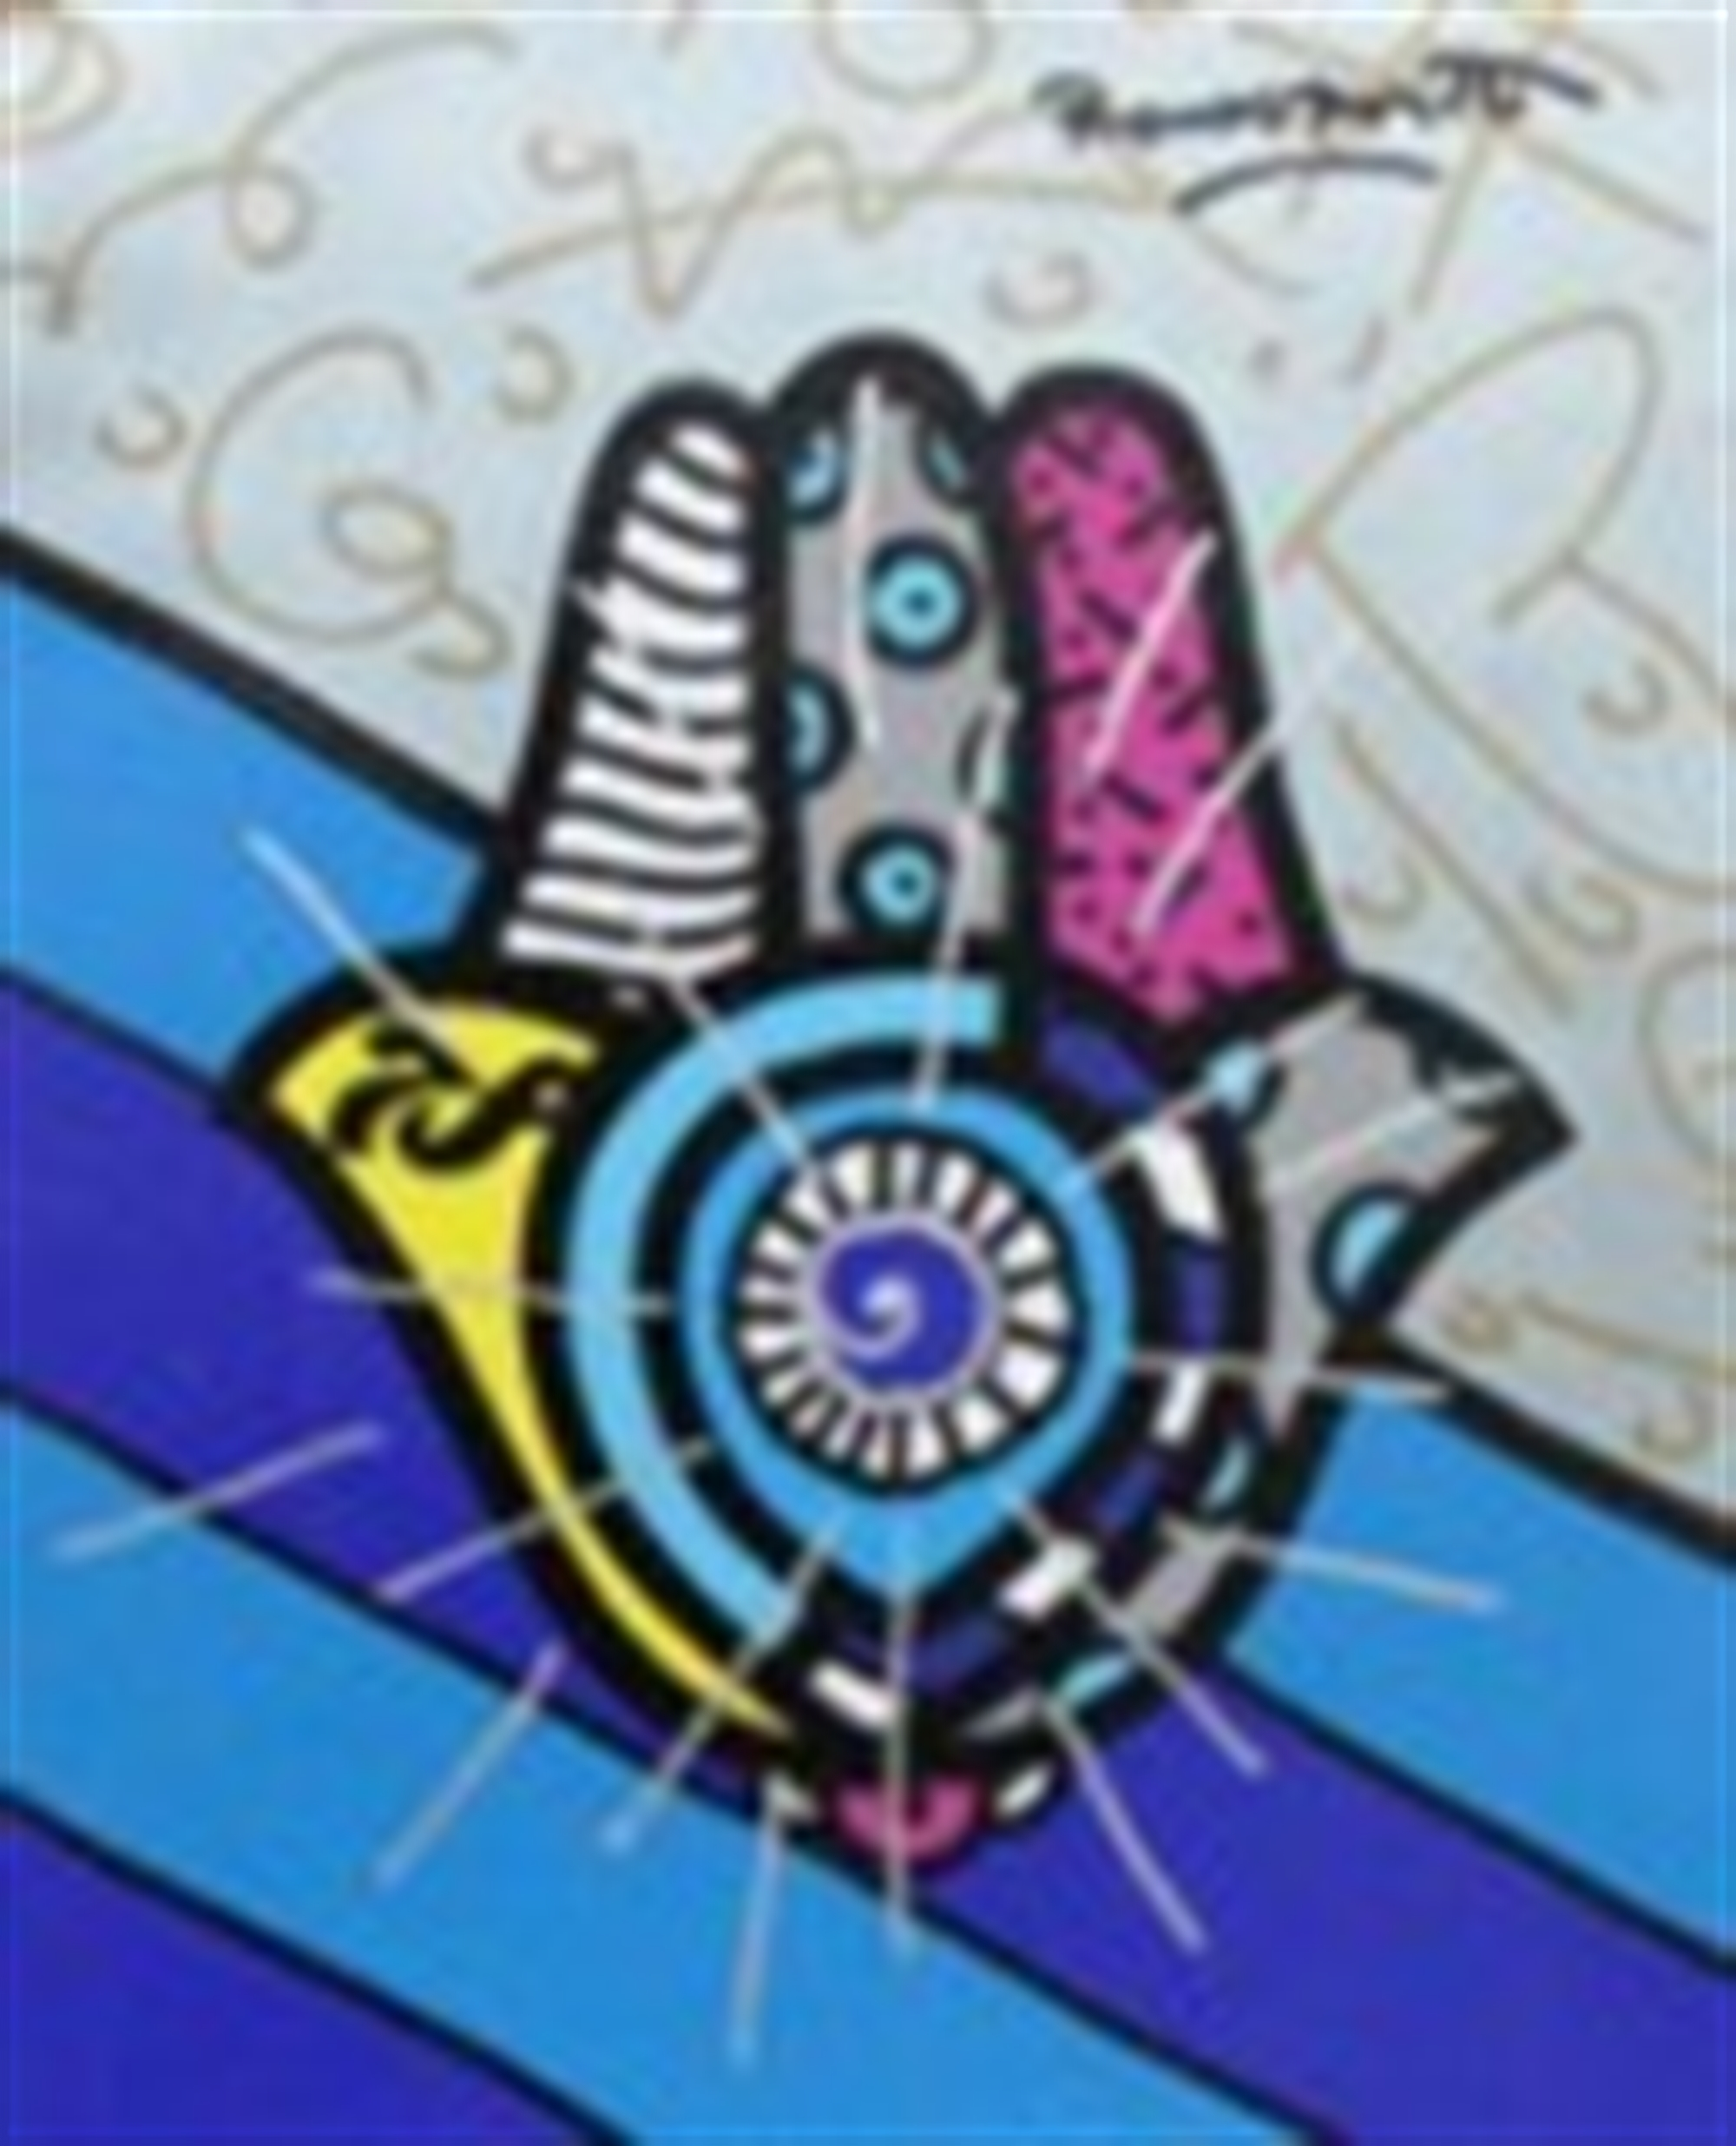 GOOD LUCK by Romero Britto